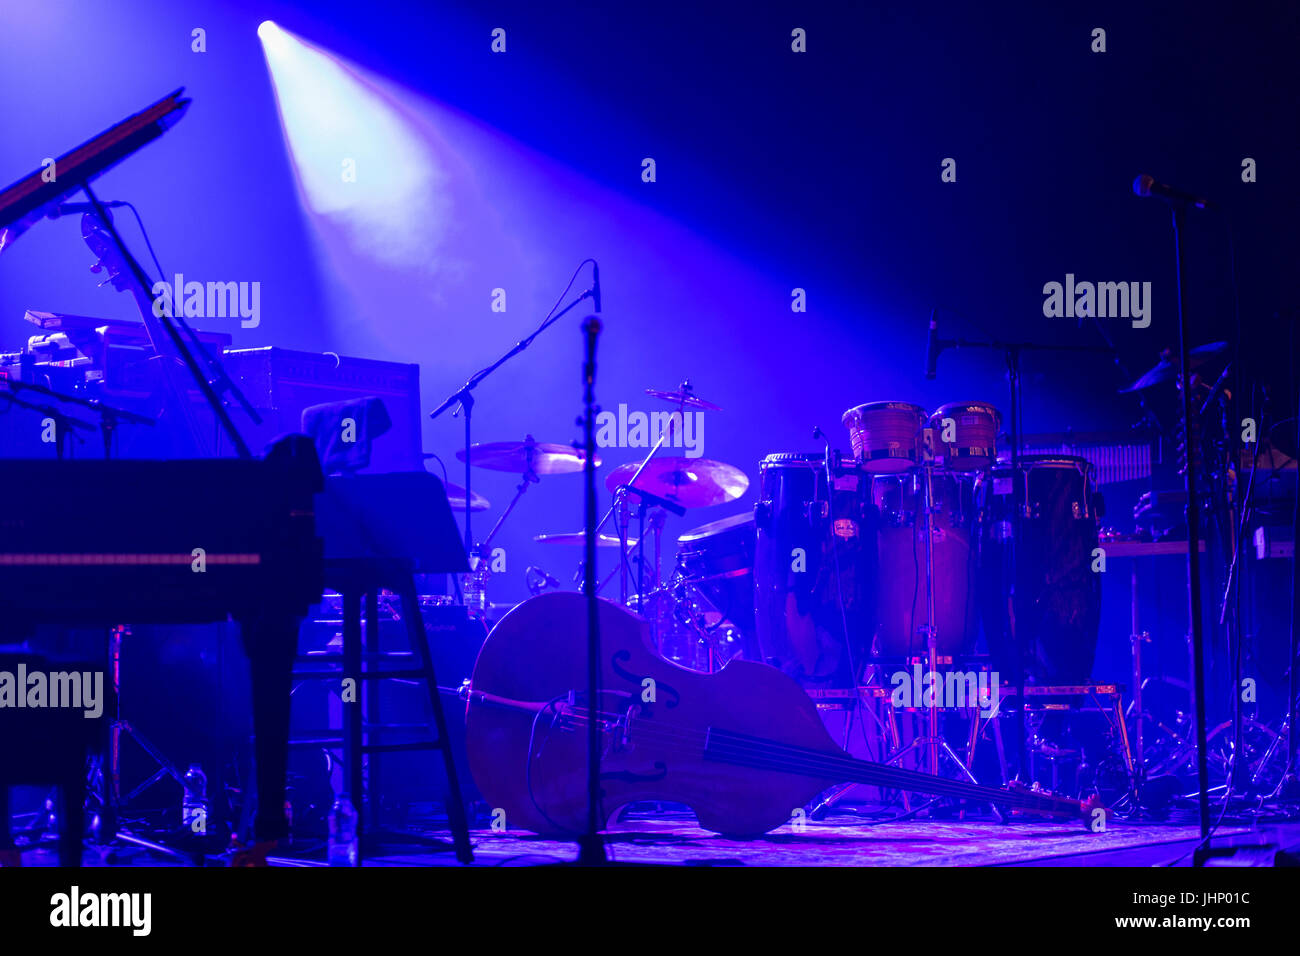 musical instruments on a stage with dramatic stage lighting - Stock Image